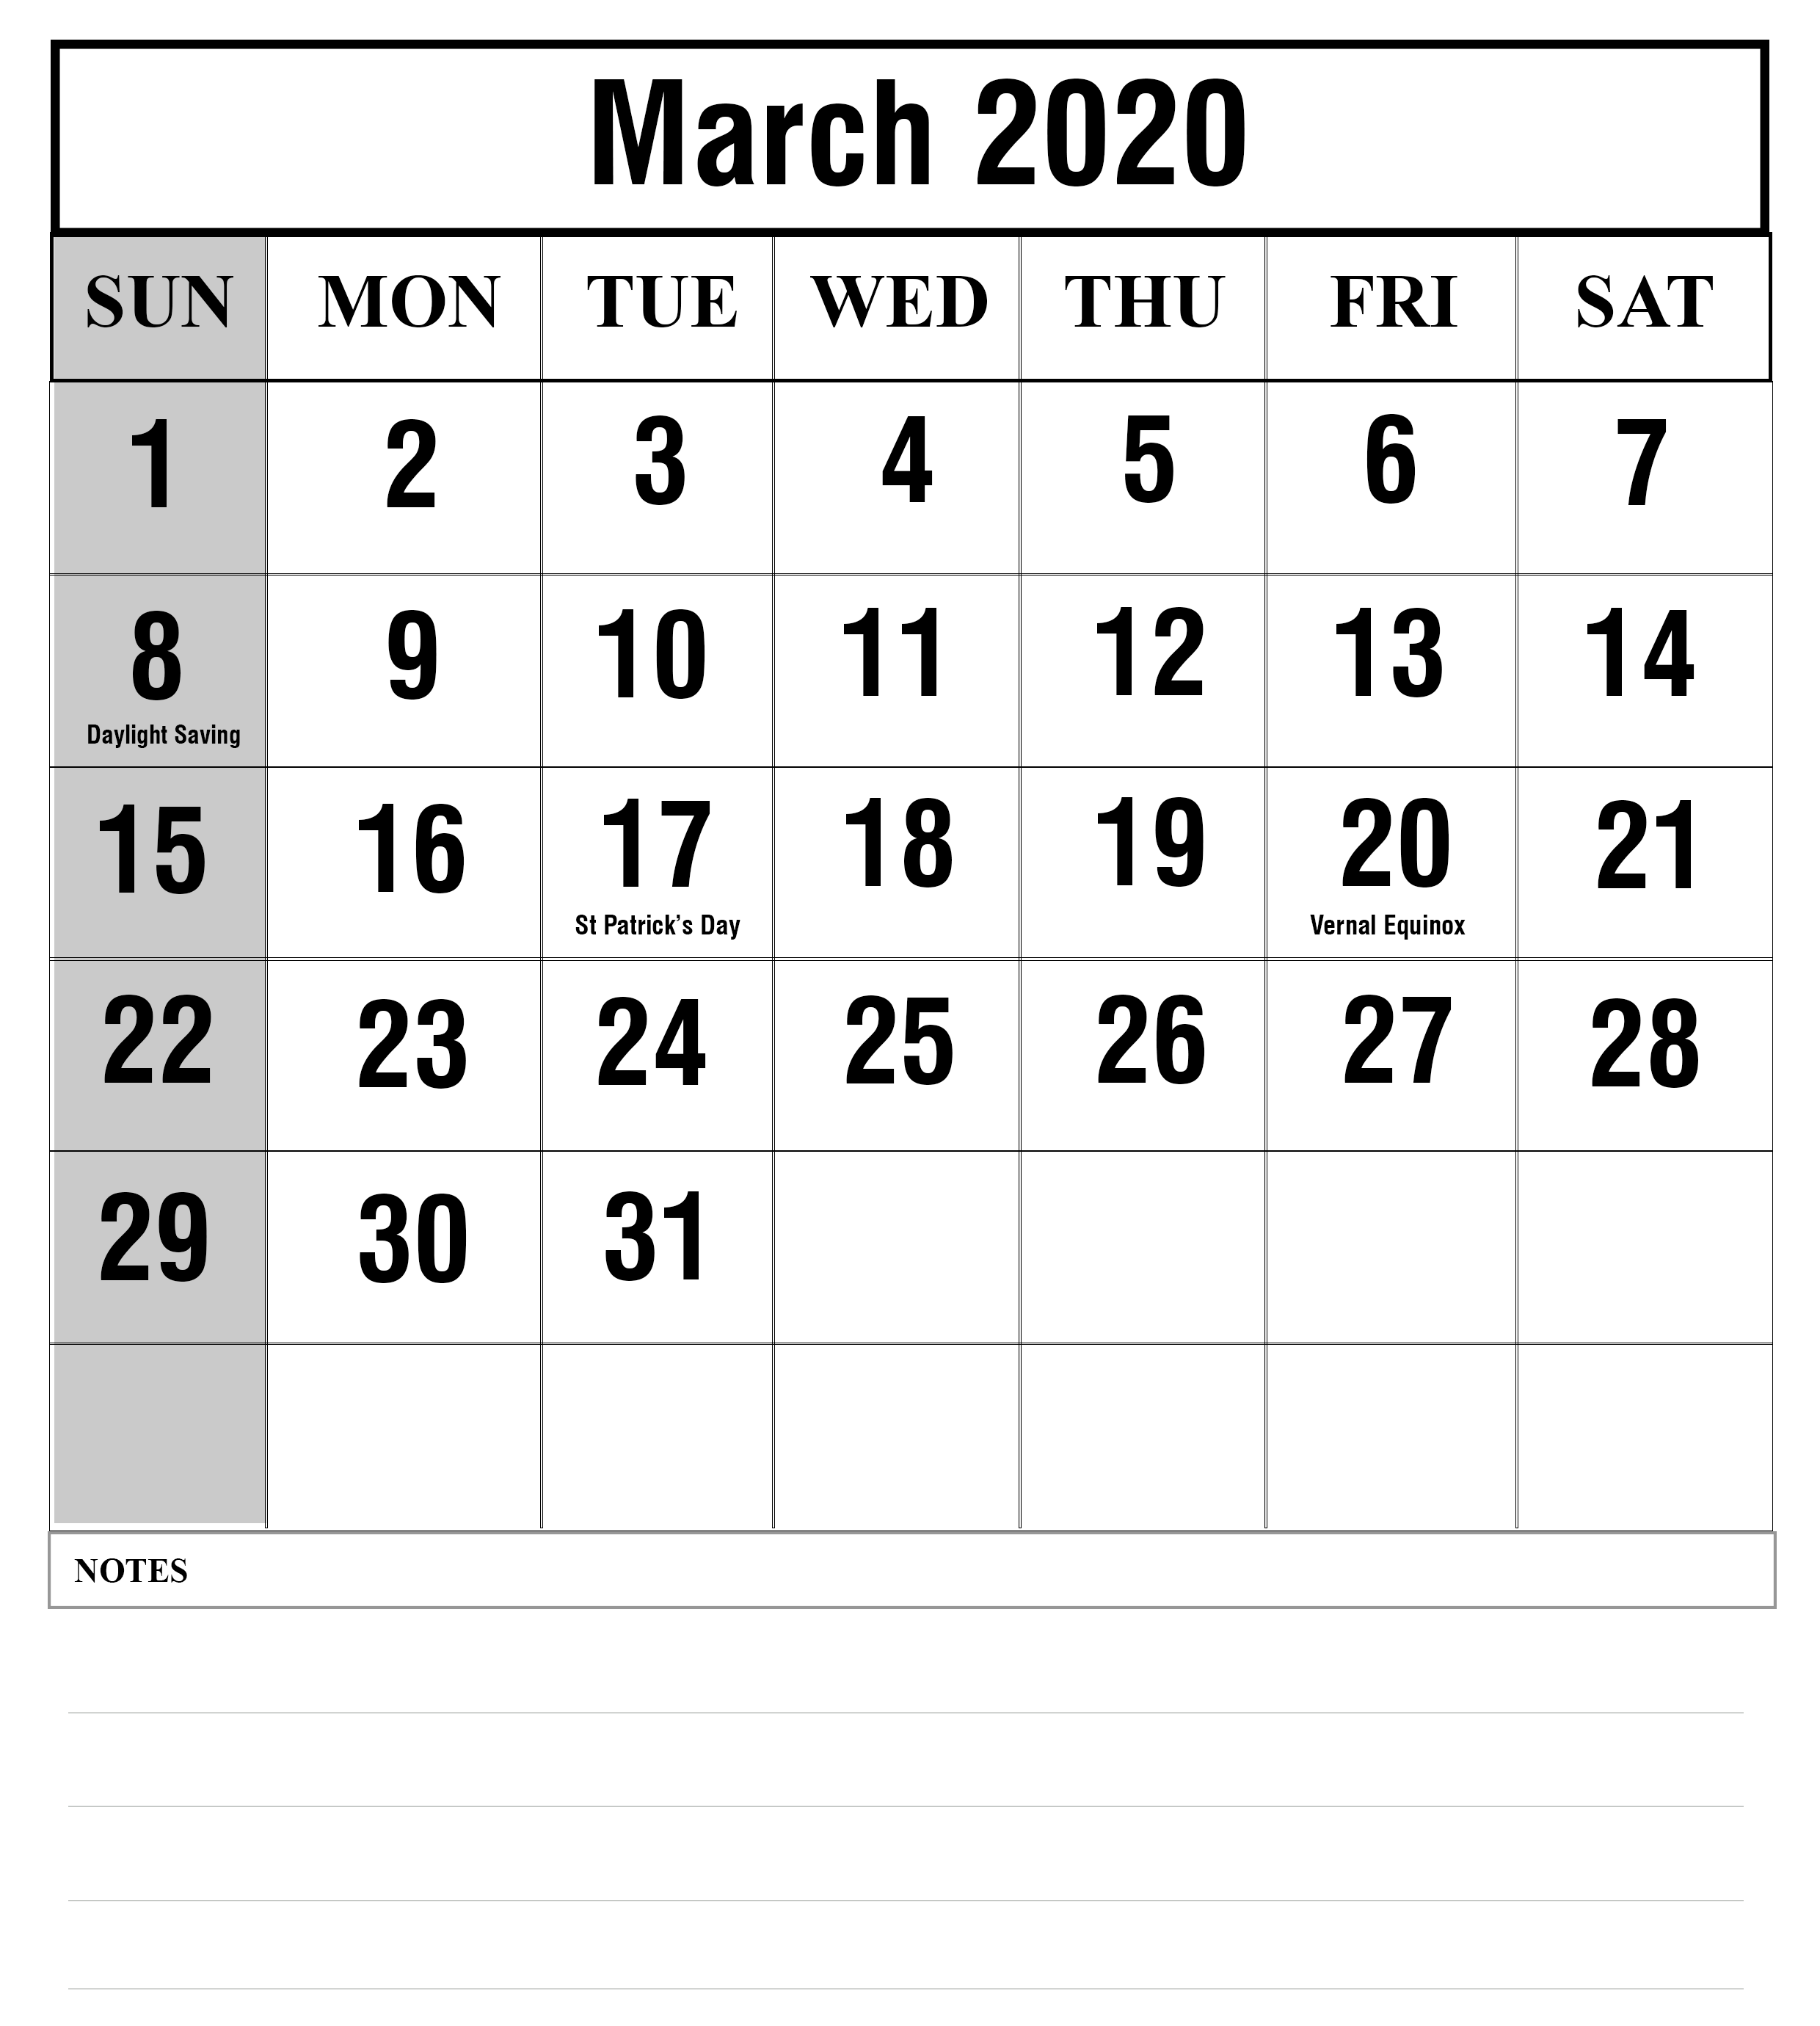 March 2020 Printable Calendar in Portrait